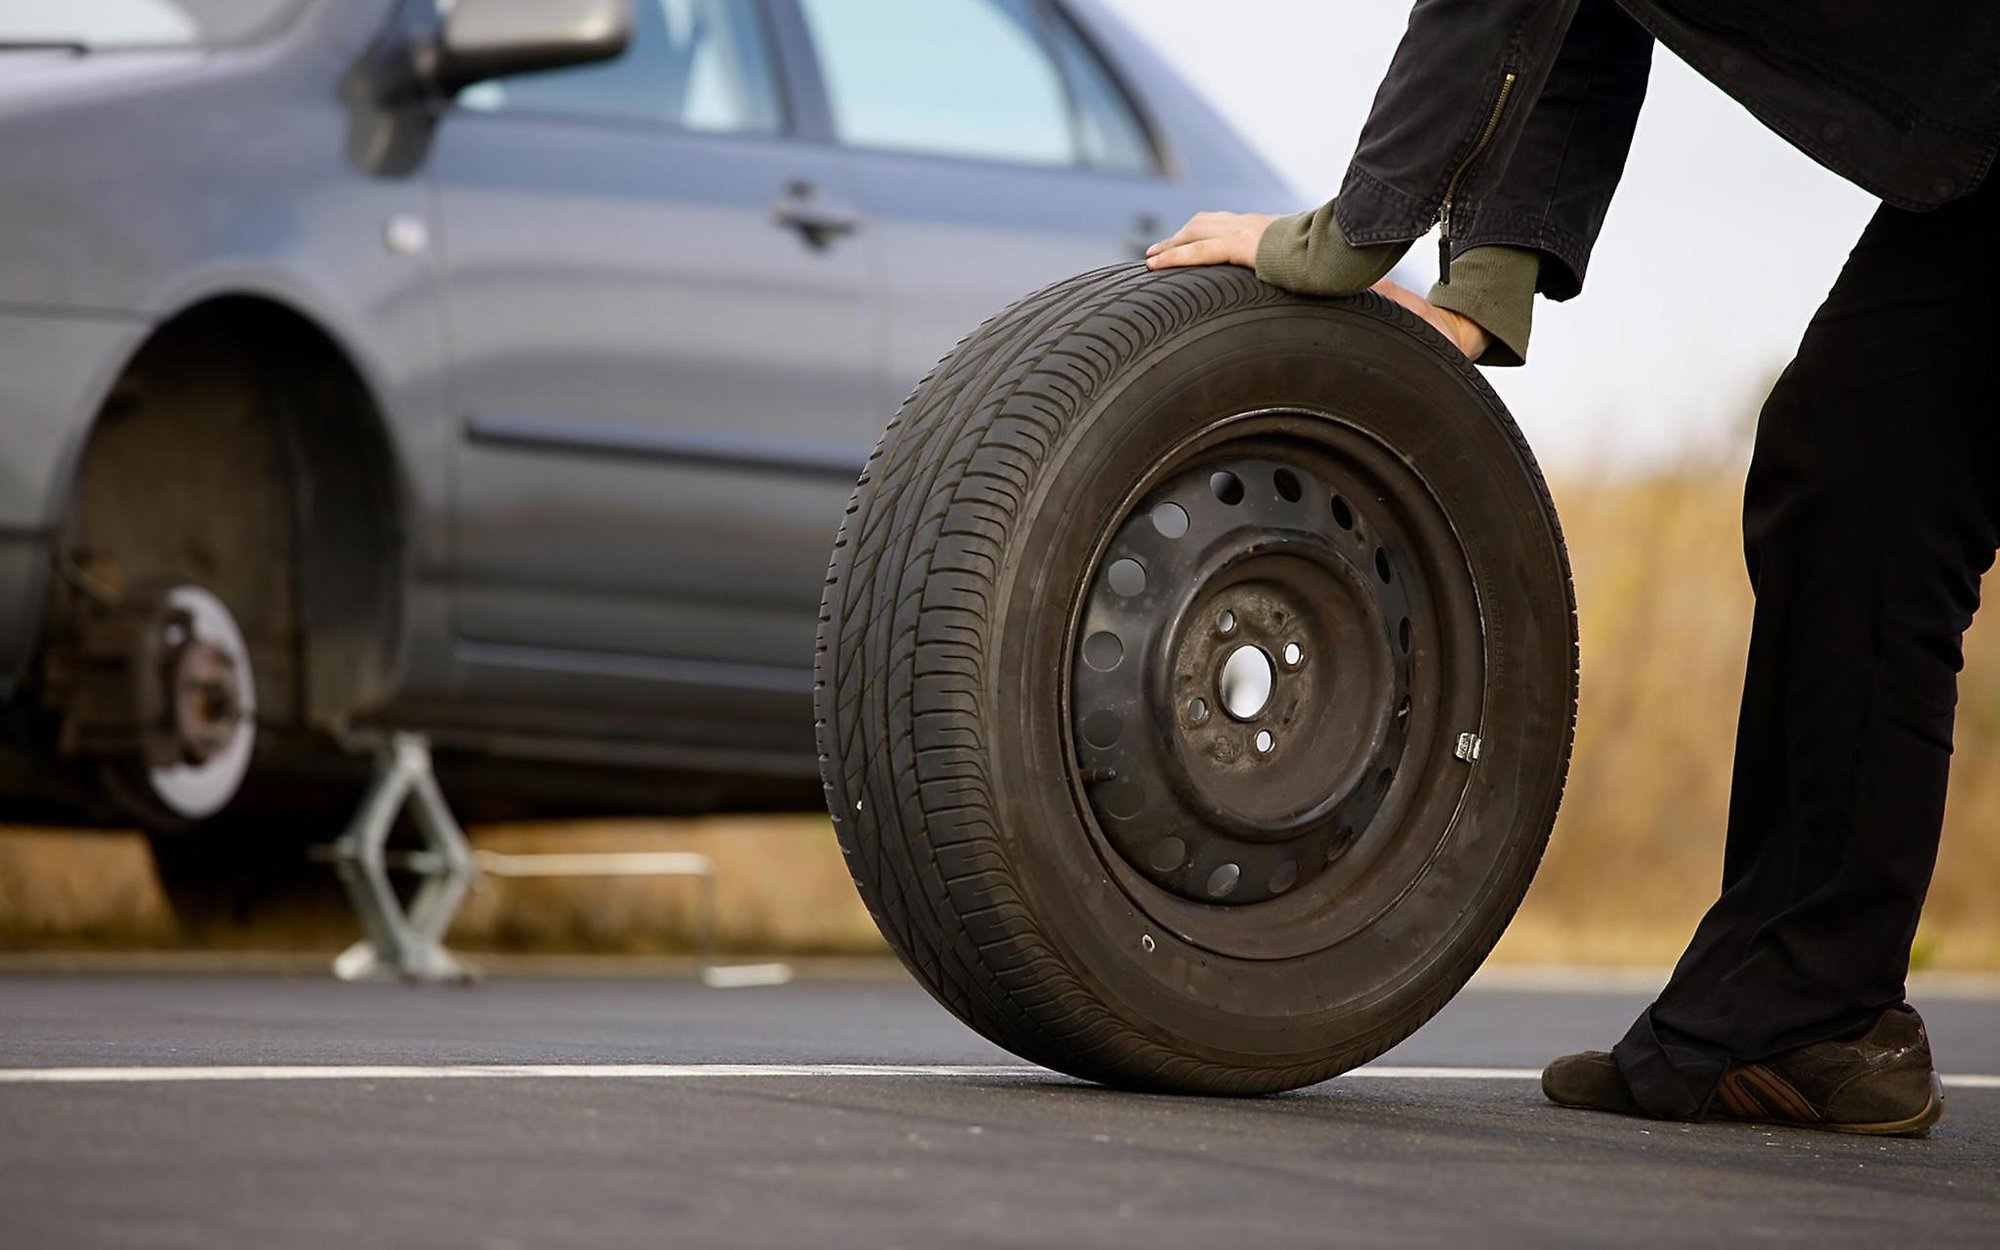 Emergency 24 Hour Mobile Tyre Repairs Covering Hertfordshire, Bedfordshire, Buckinghamshire, Essex and North London.